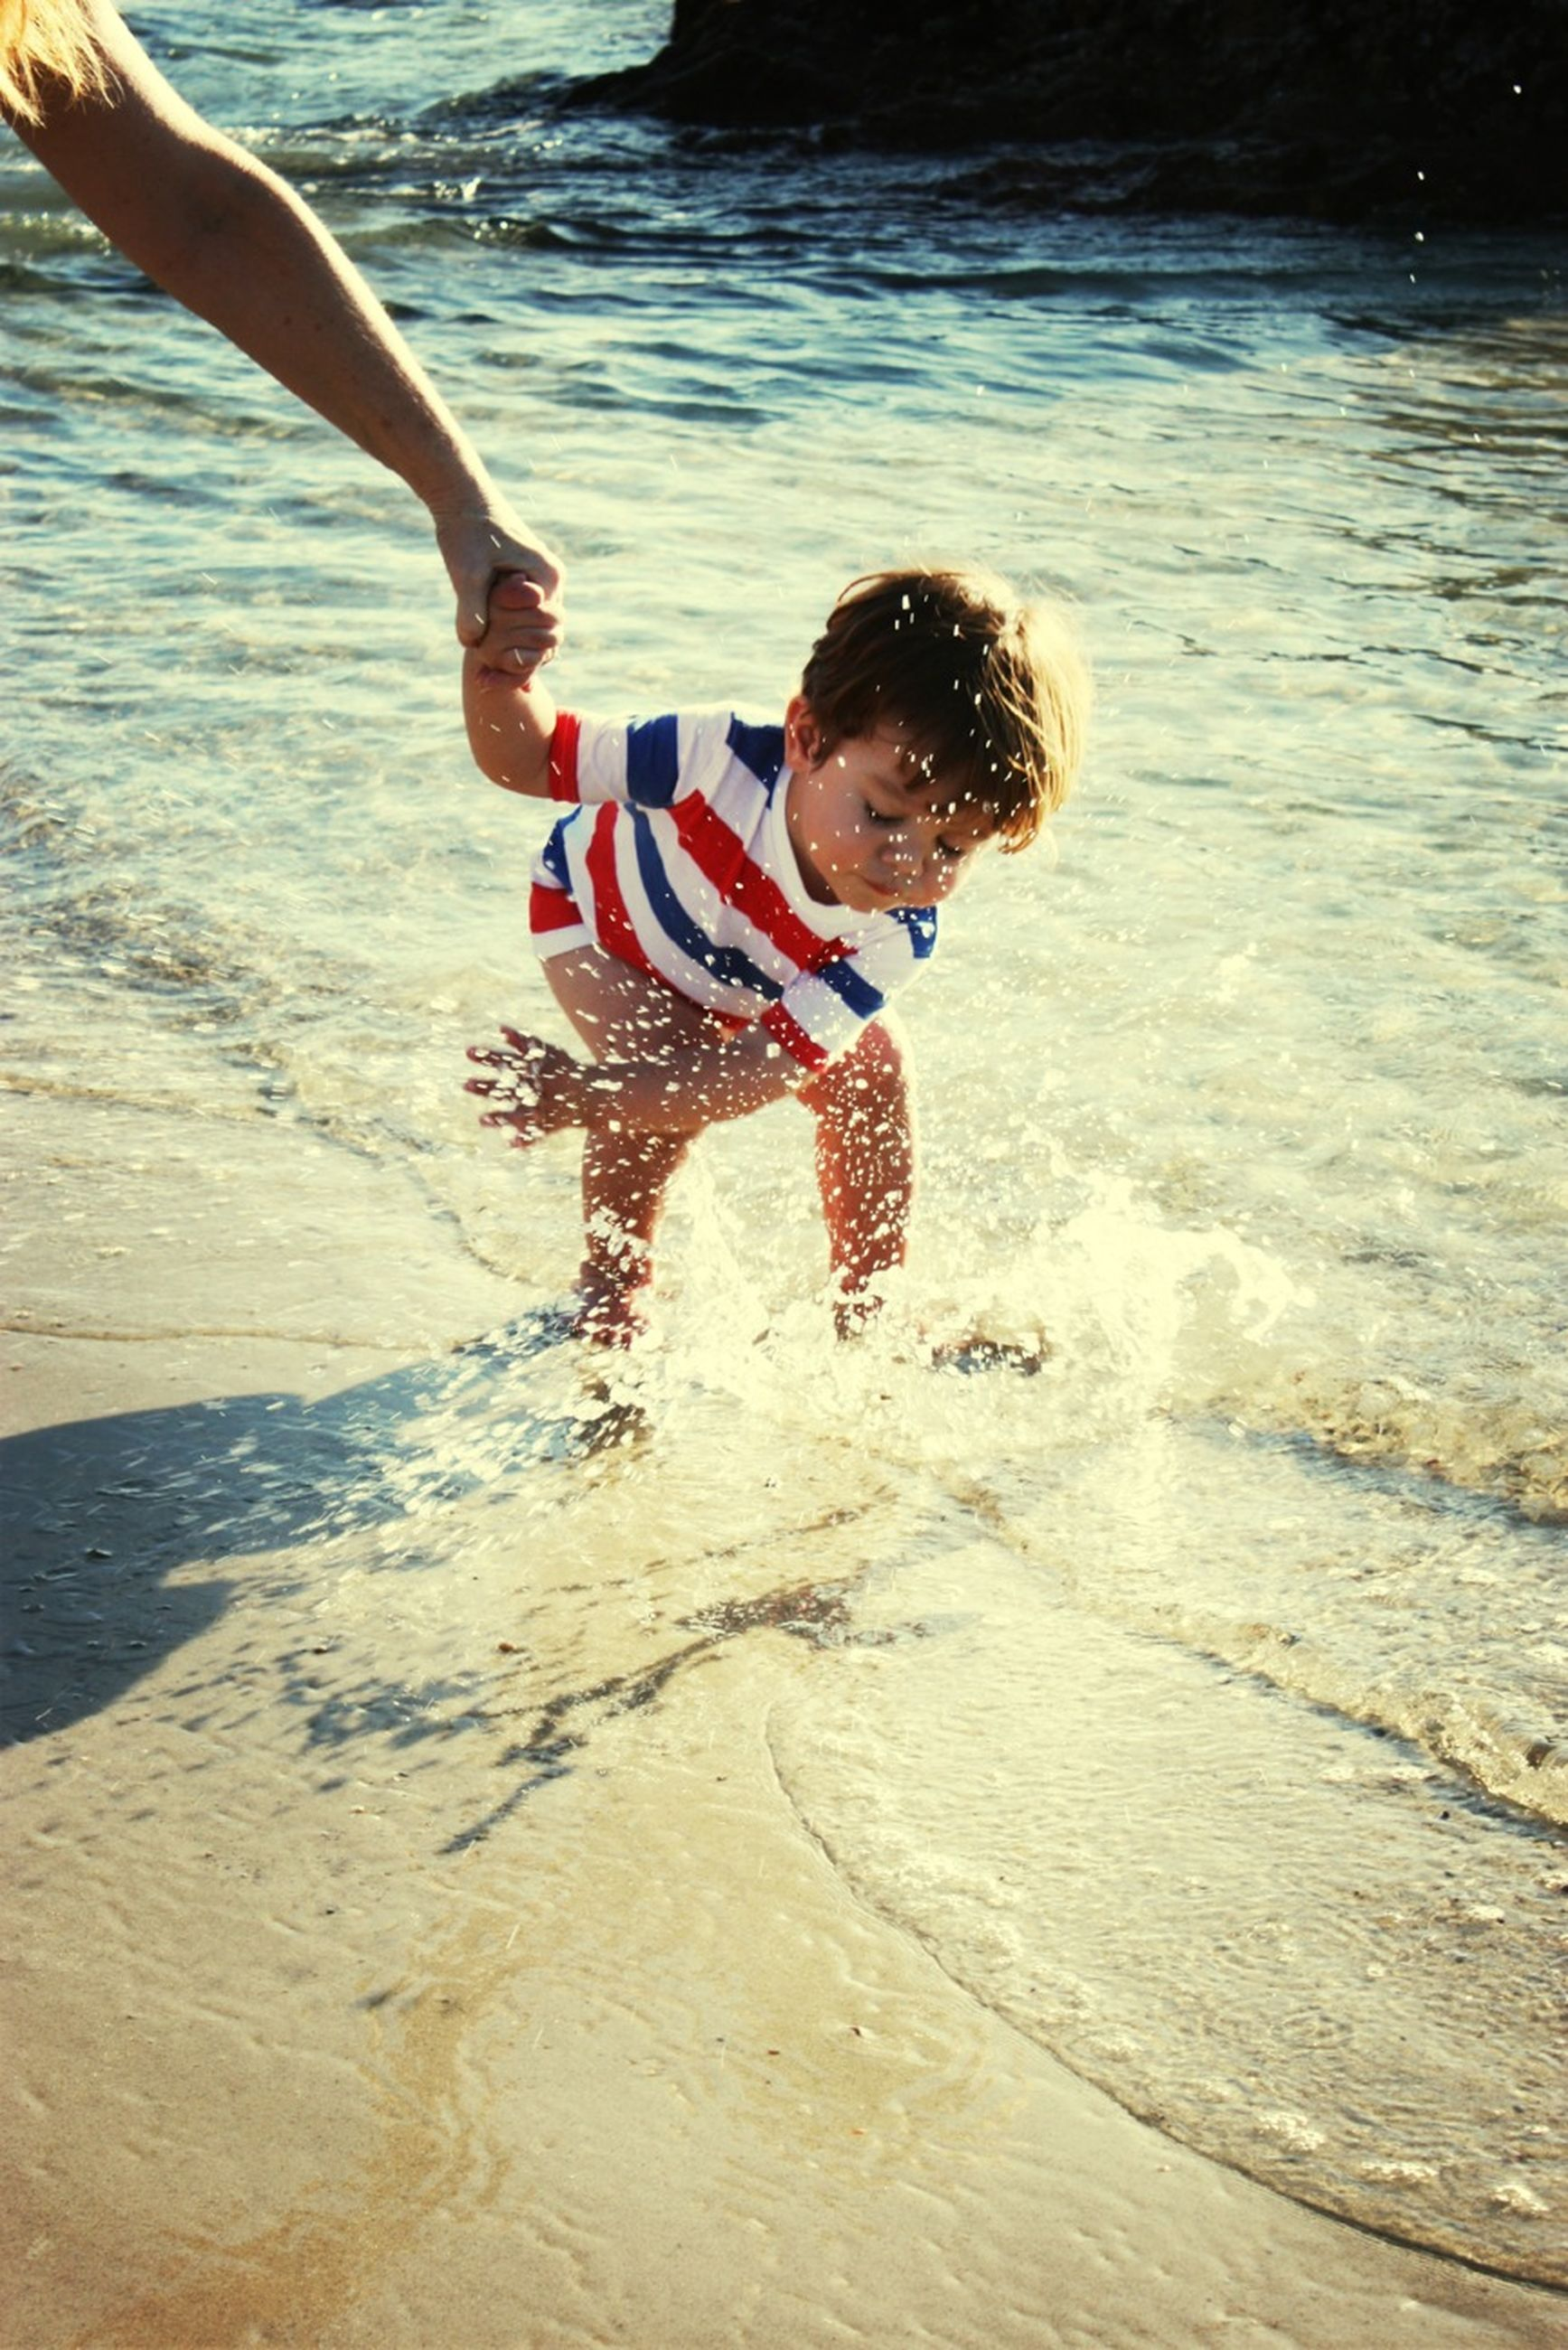 lifestyles, leisure activity, full length, childhood, water, enjoyment, fun, elementary age, playing, boys, girls, playful, jumping, motion, beach, casual clothing, person